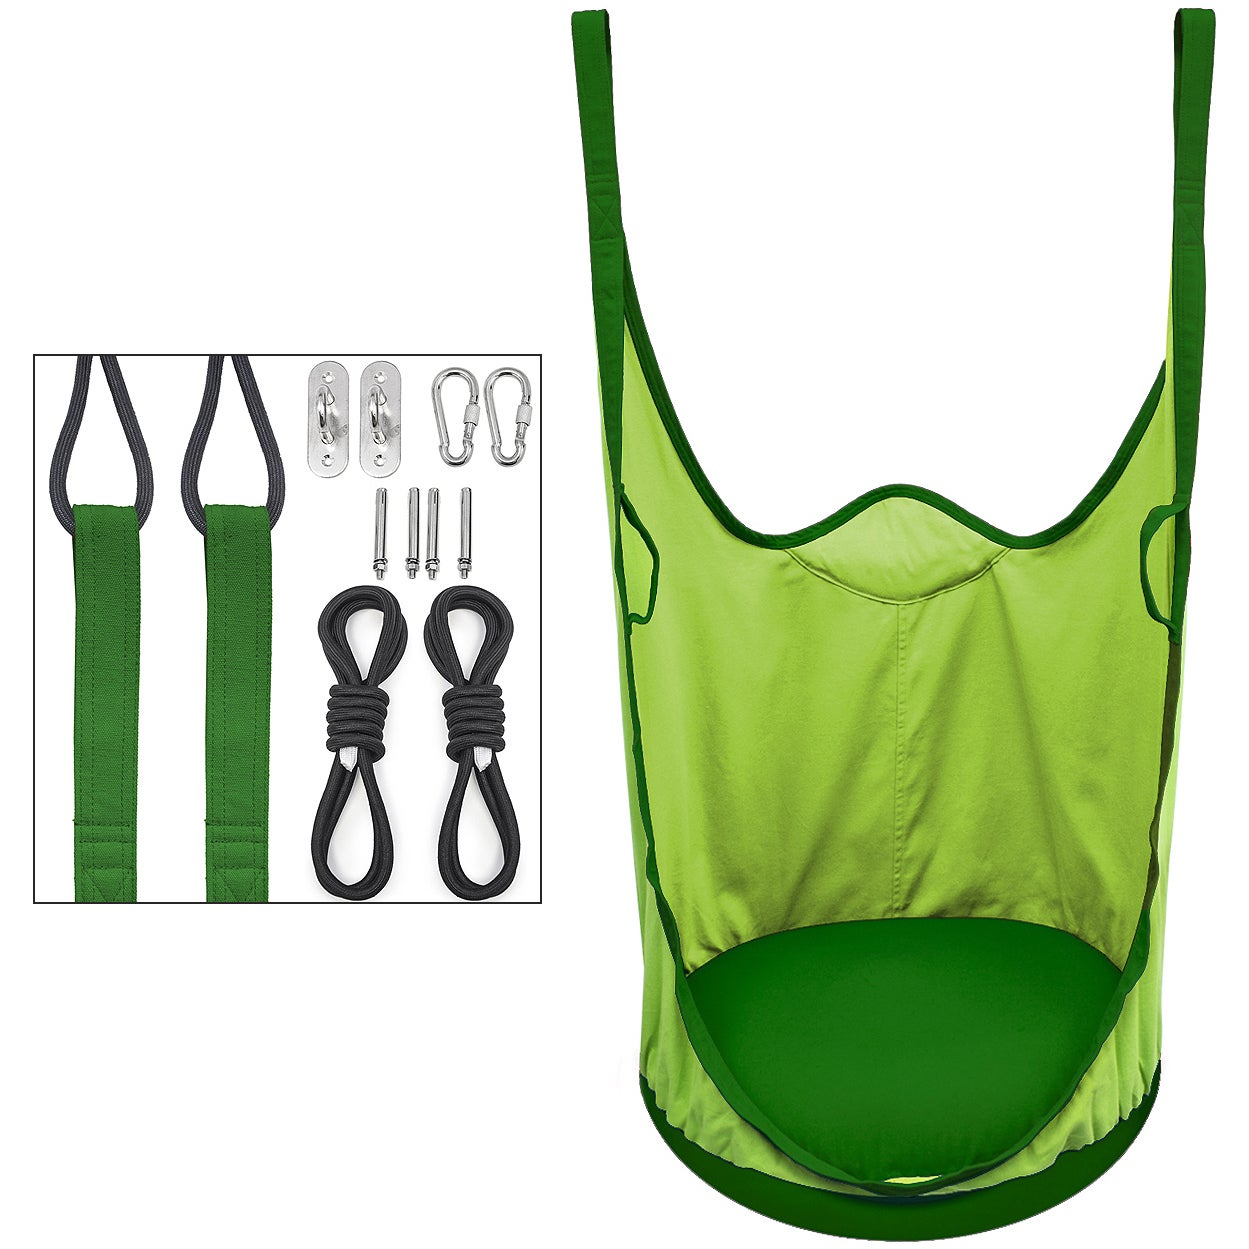 Groovy Sorbus Kids Pod Swing Chair Nook Hanging Seat Hammock Nest For Indoor And Outdoor Use Pod Green Camellatalisay Diy Chair Ideas Camellatalisaycom